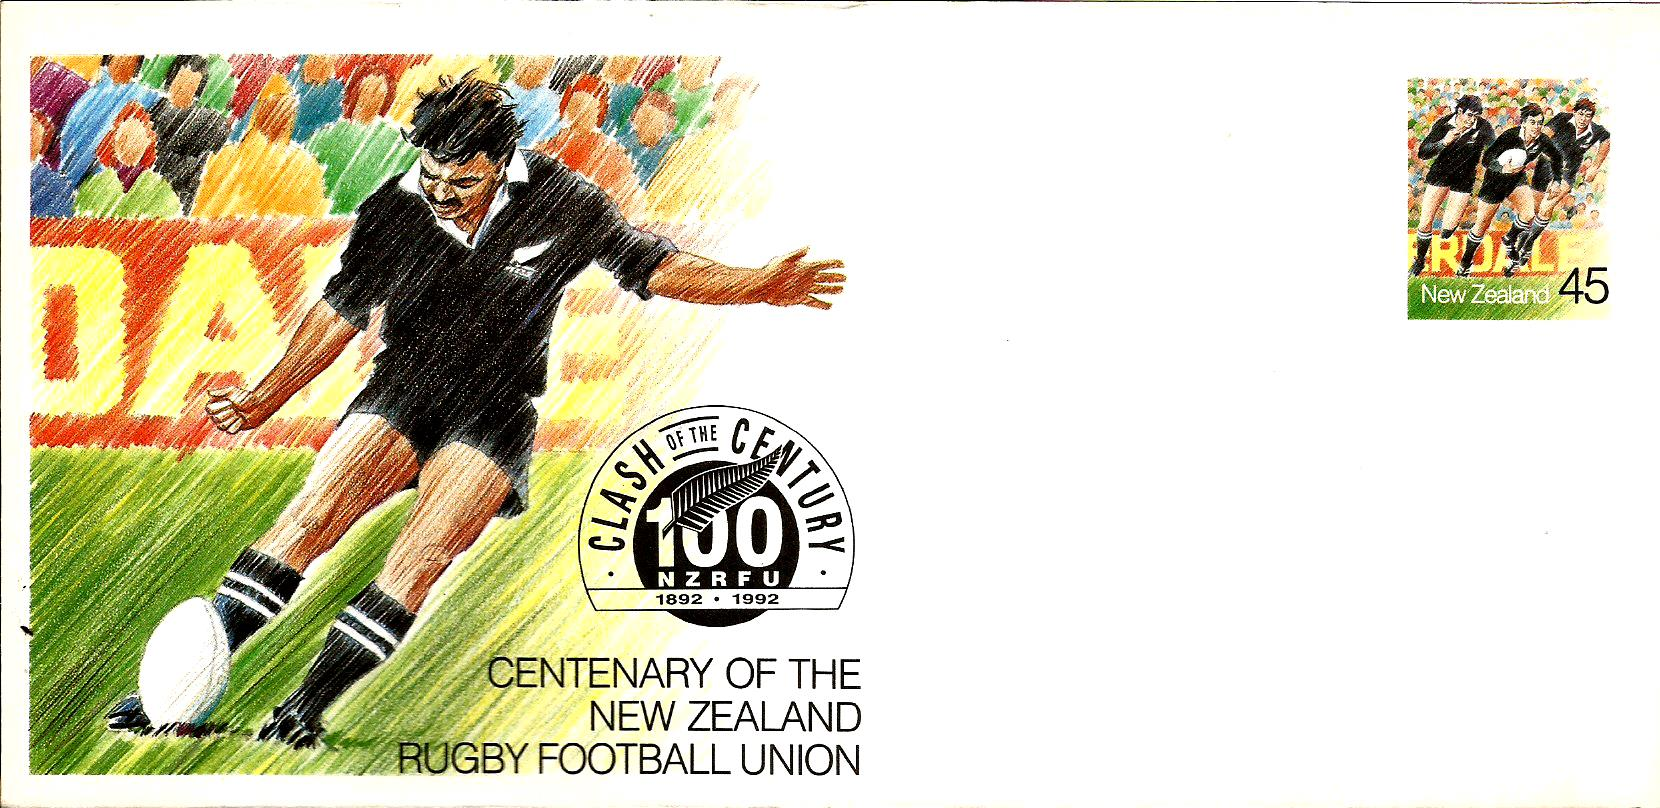 PSE CENT NZ RUGBY UNION